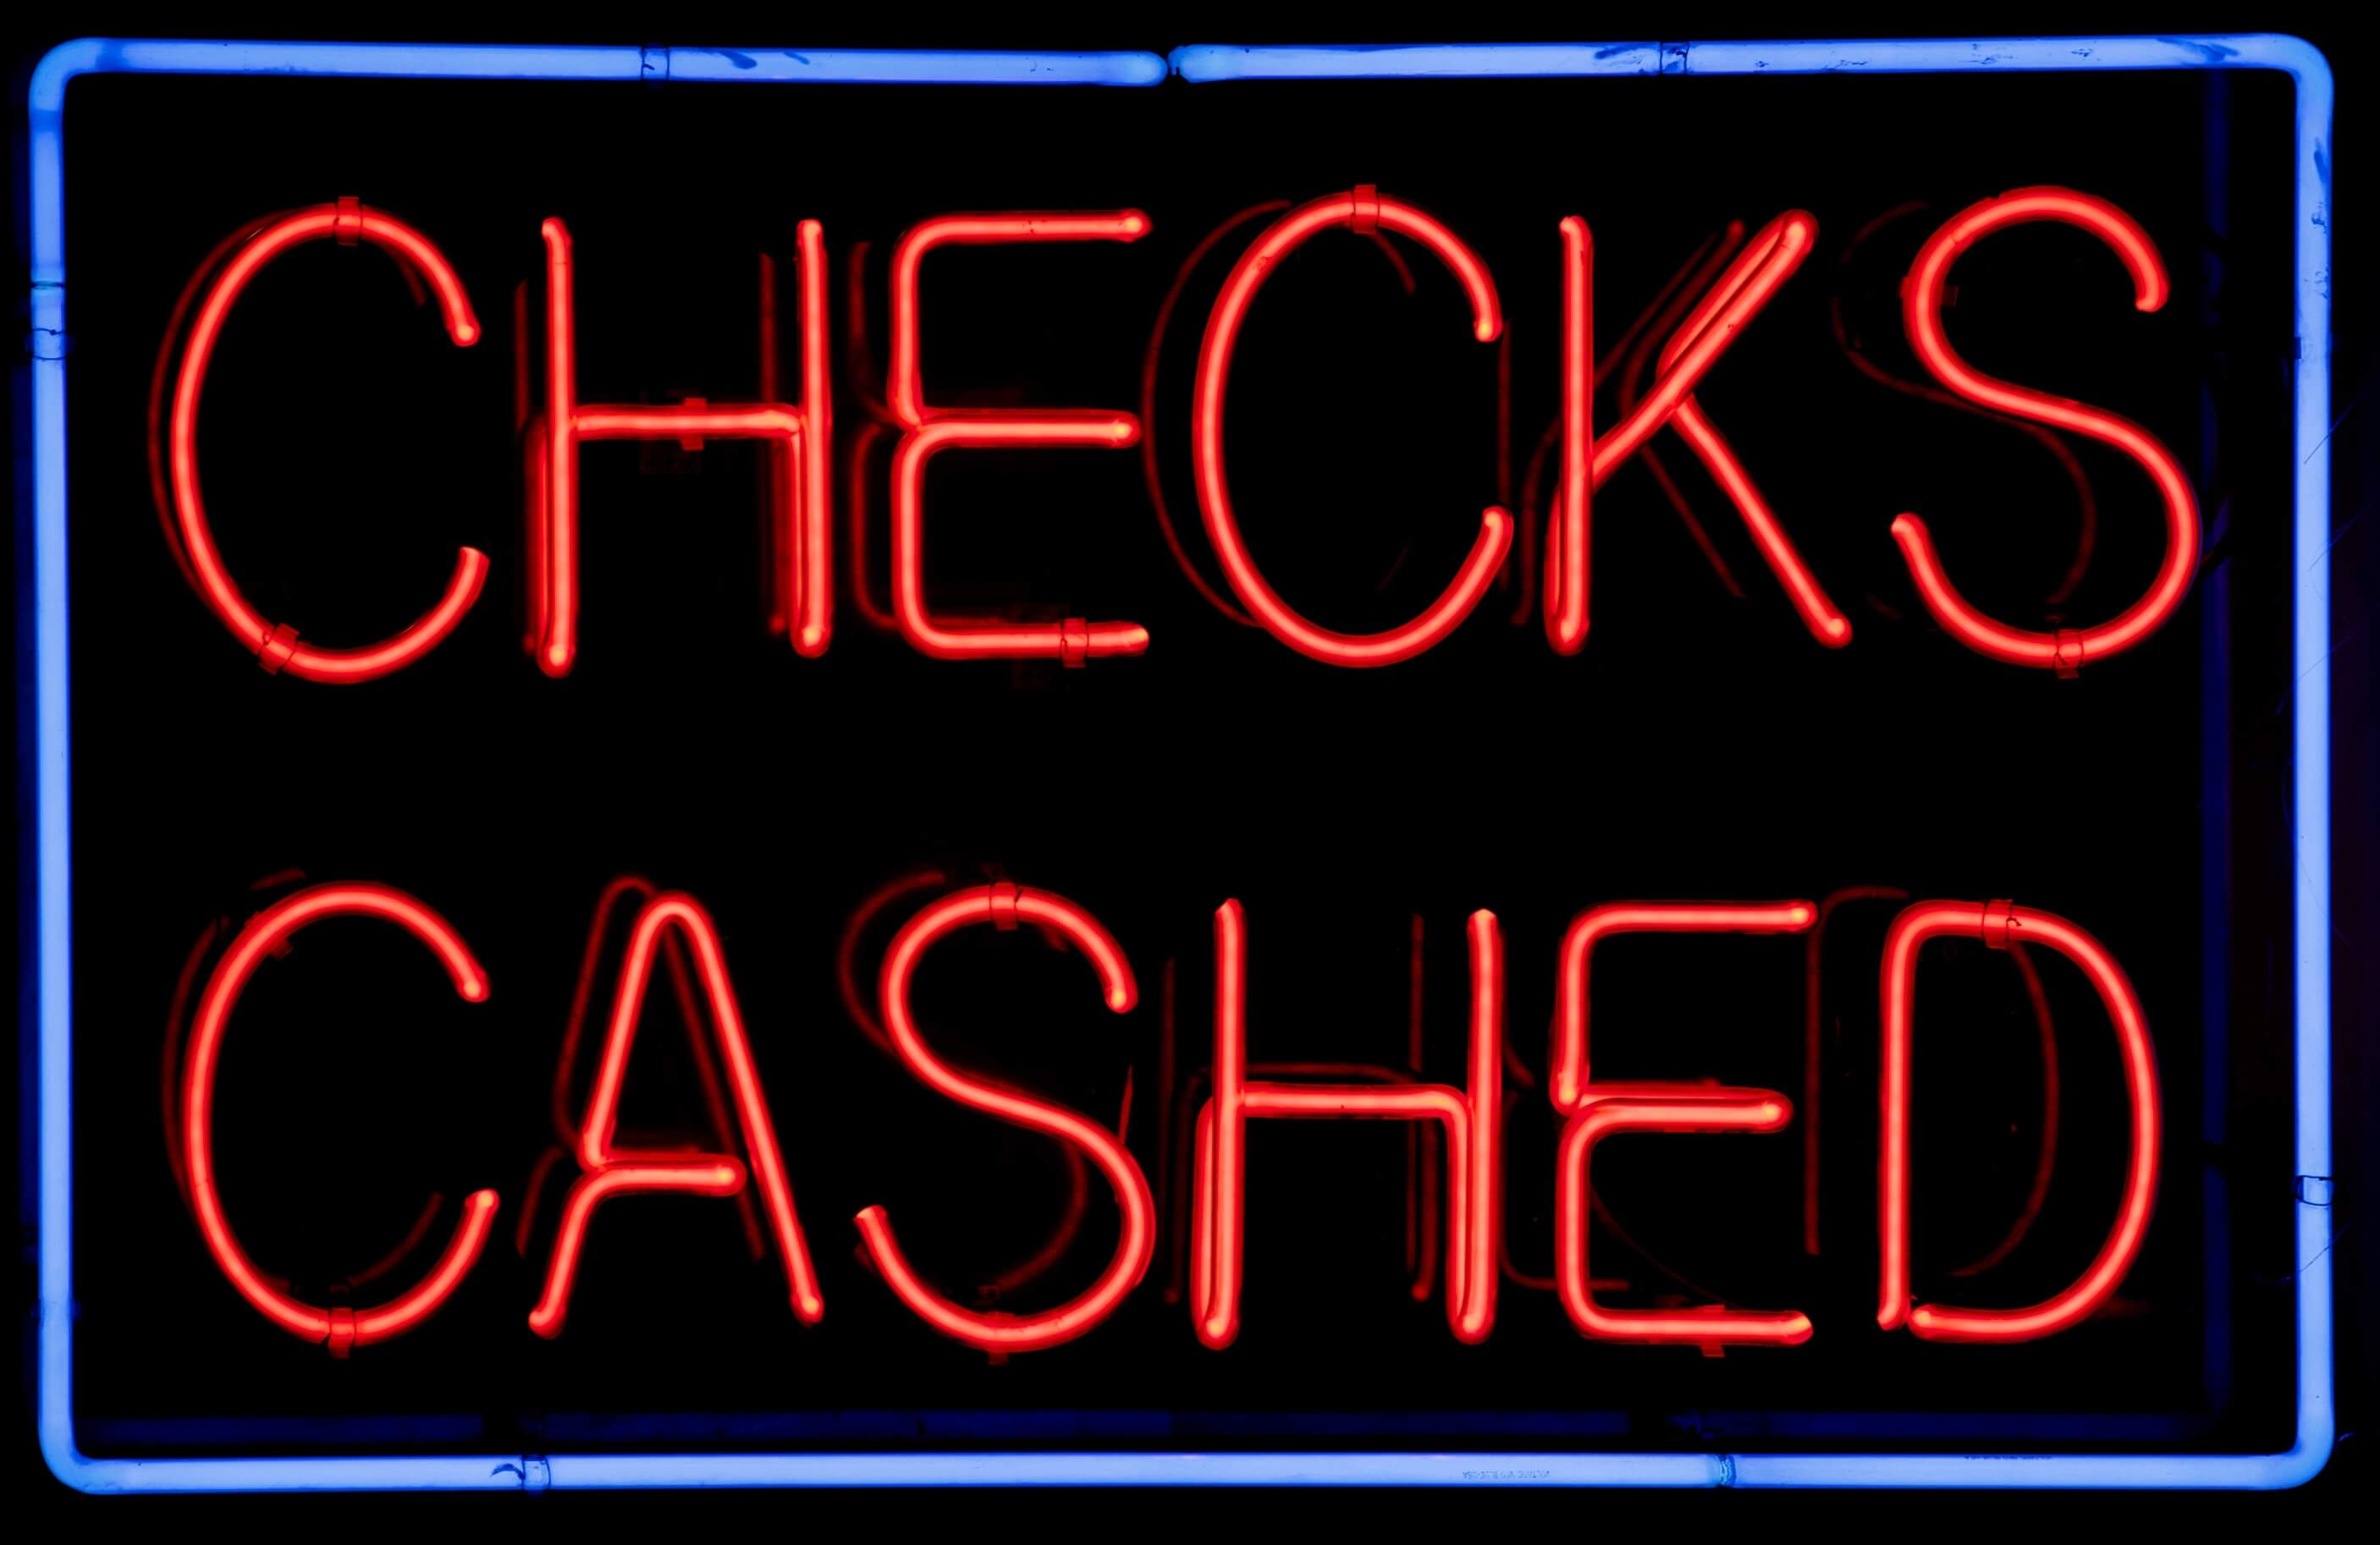 No Fault checks cashing scam